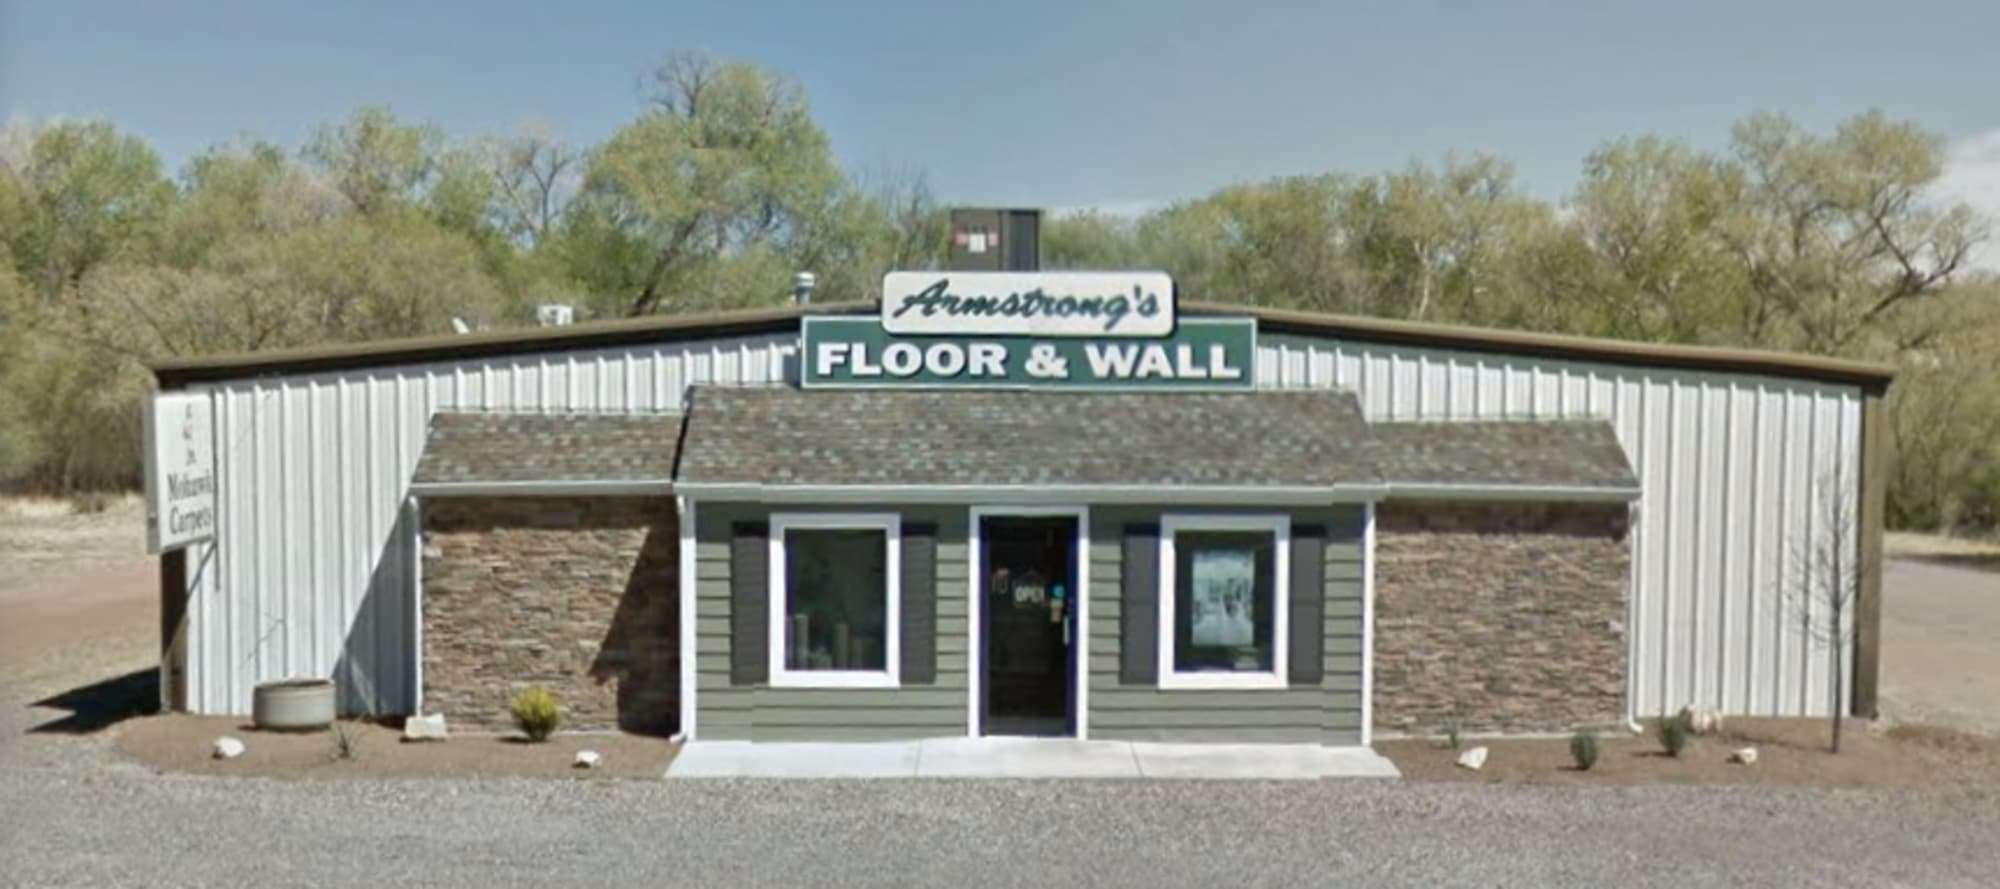 Armstrong Floor & Wall  - 2550 N Silver St Silver City, NM 88061